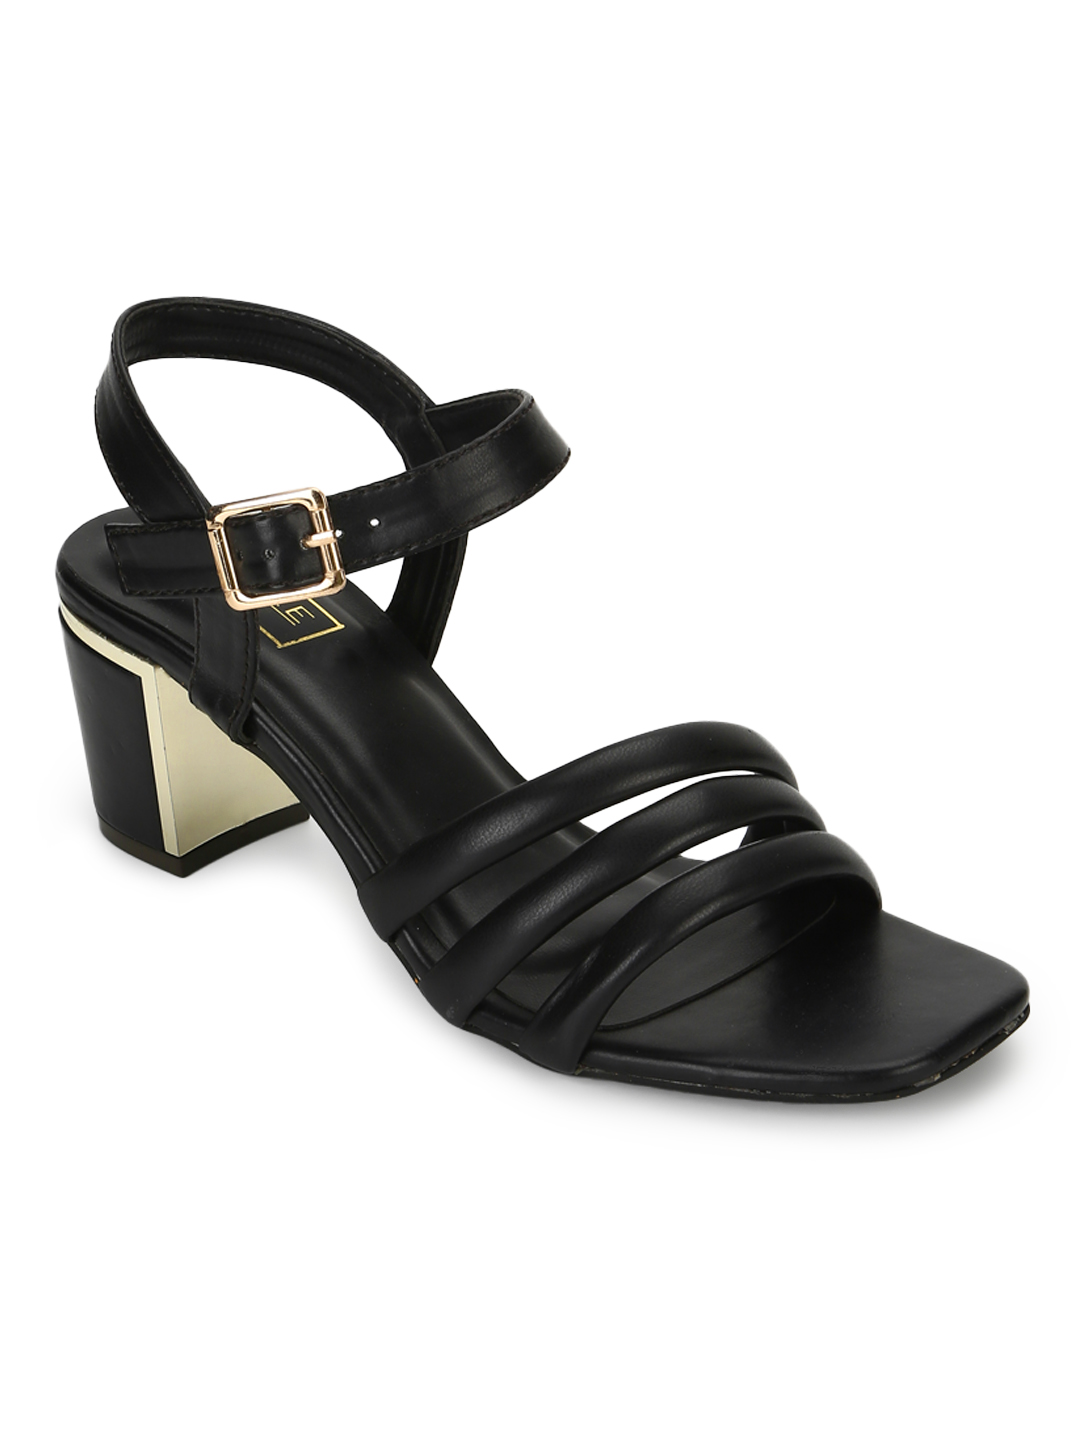 Truffle Collection | Truffle Collection Black PU Block Heel Sandals